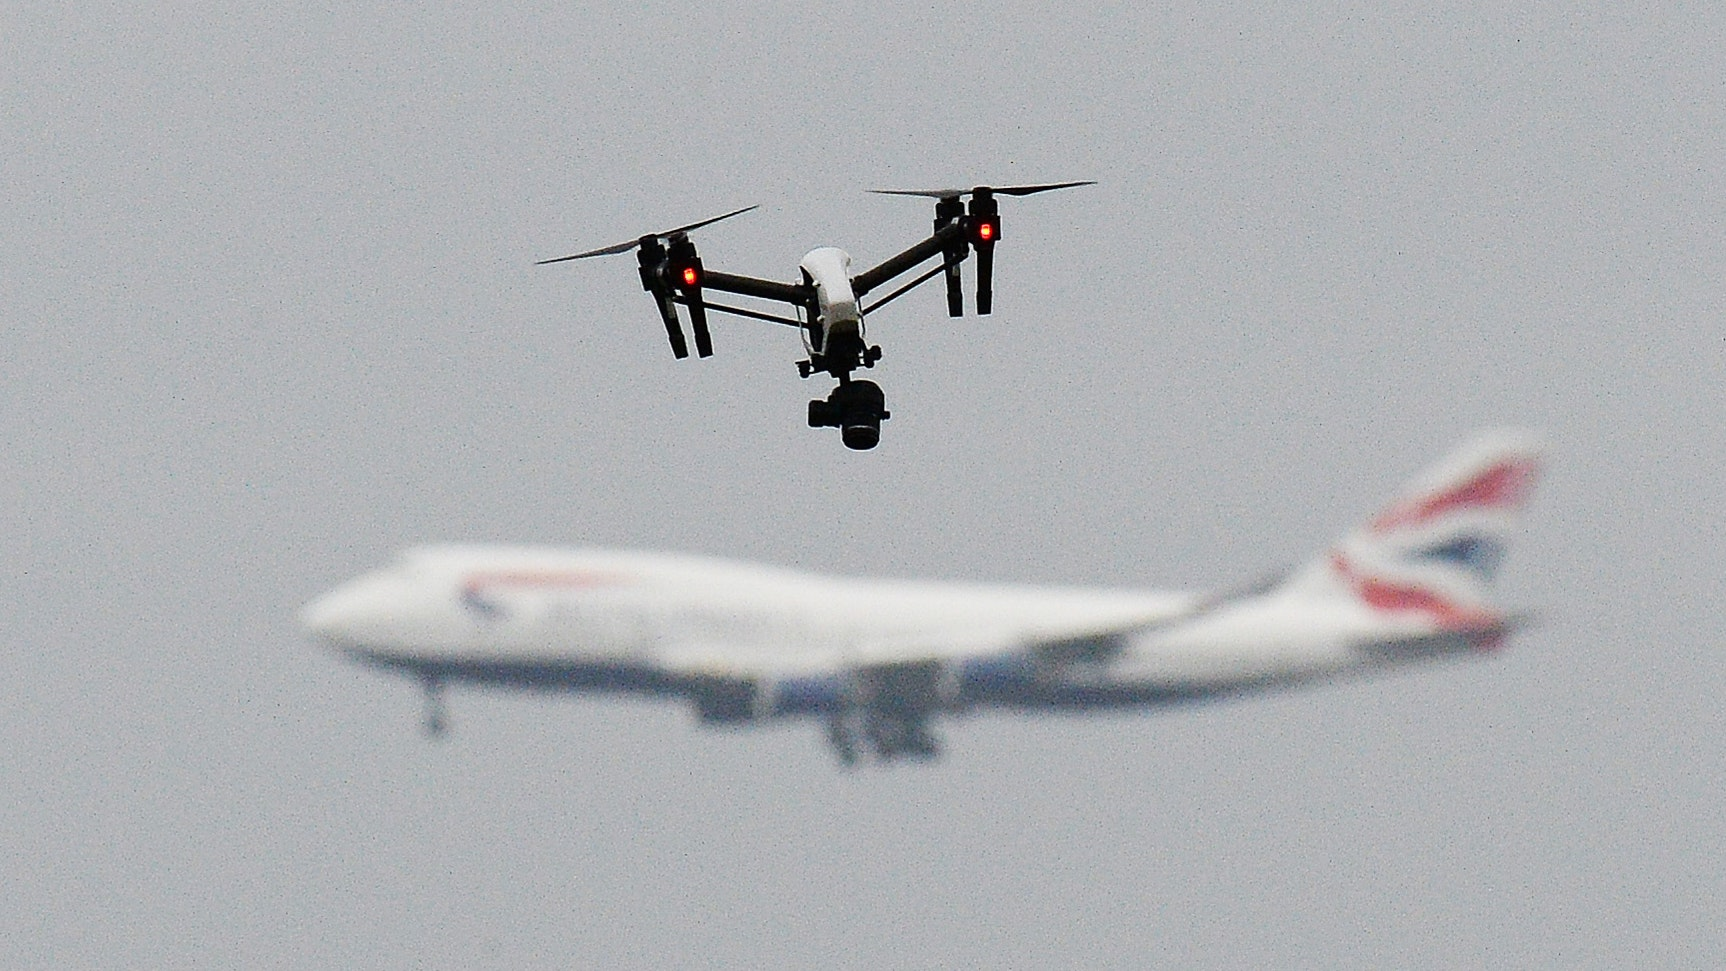 Heathrow Airport says suspending departures after drone sighting